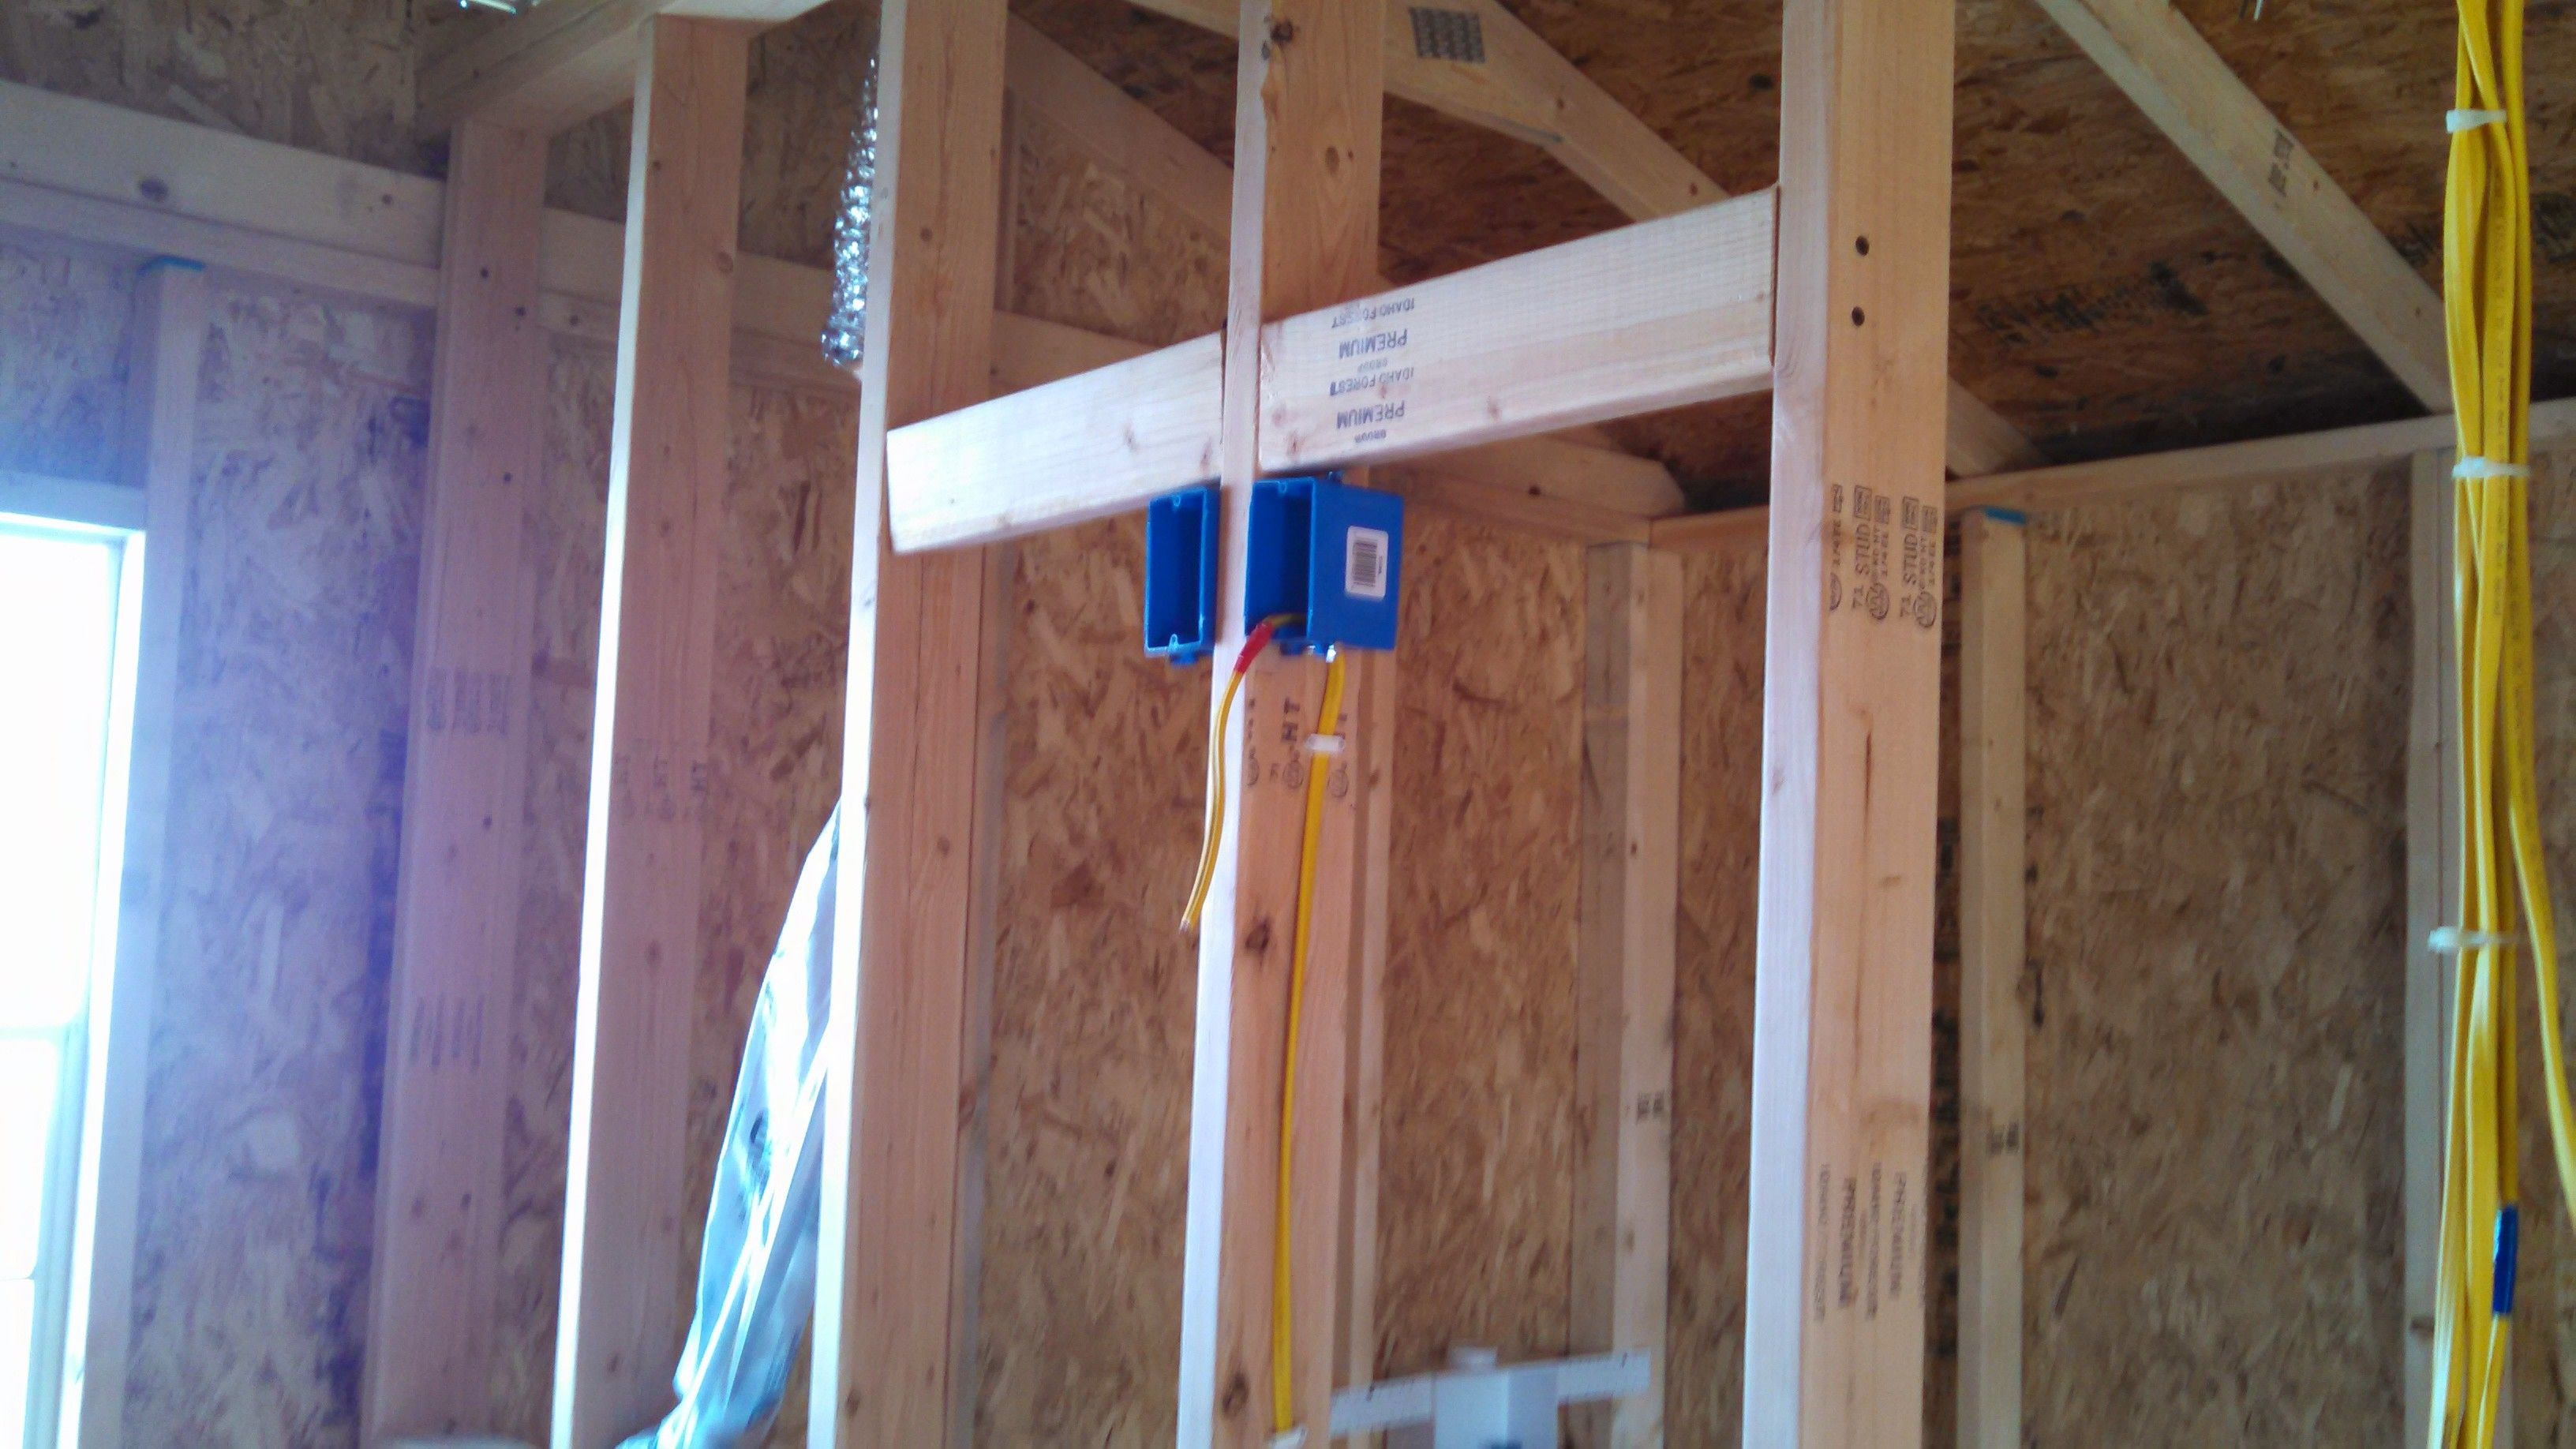 Blocking Done For The Tv Mount In Bed Room Tiny Home Outlet 4 Prong Wiring A Stove Http Www Hammerzone Com Mounted